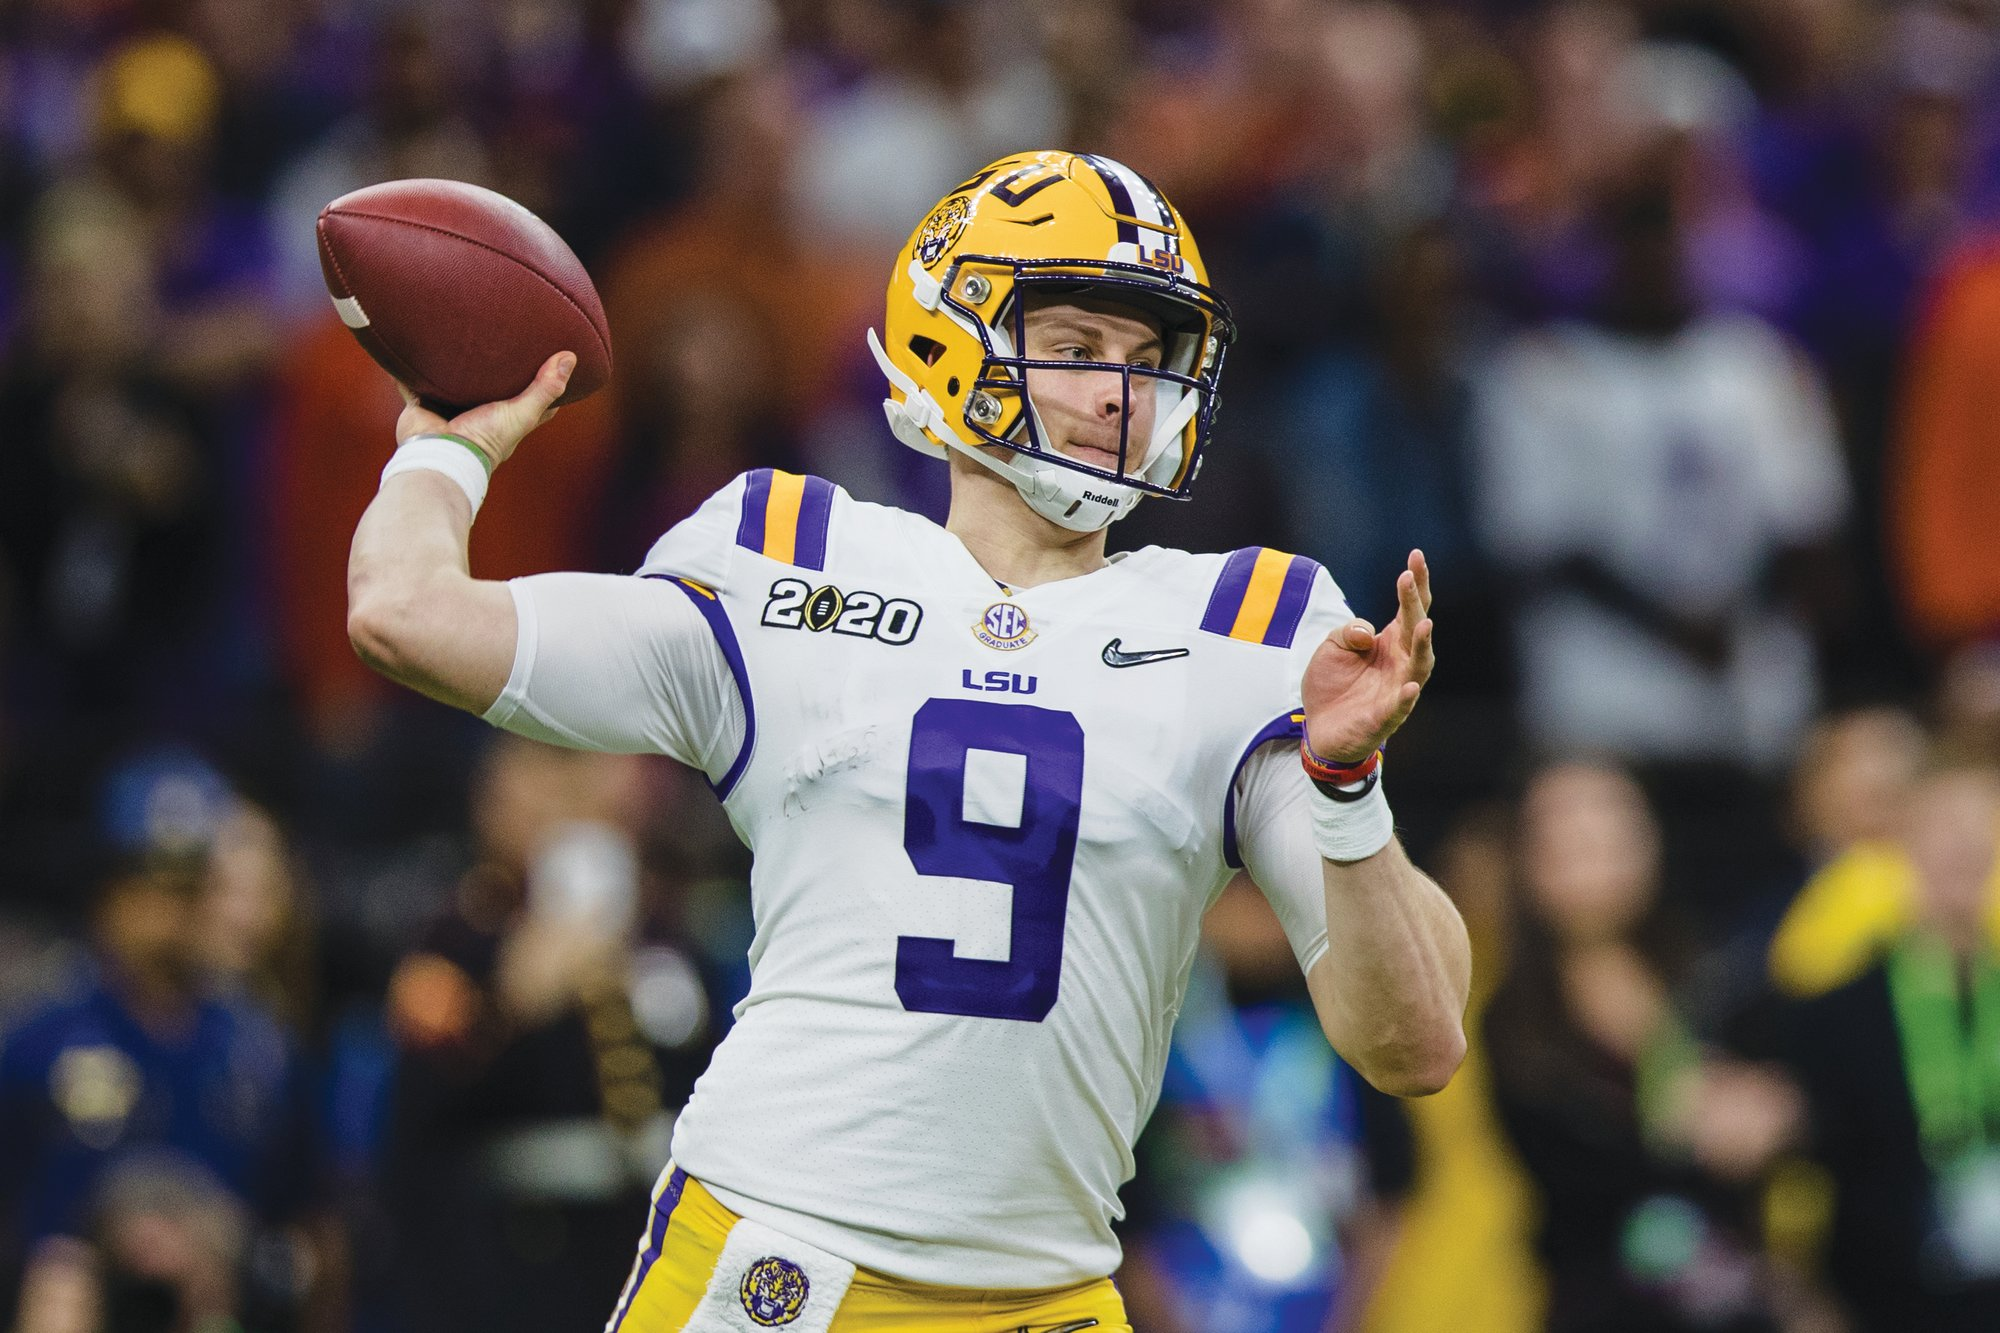 LSU quarterback Joe Burrow is expected to be selected by the Cincinnati Bengals as the No. 1 overall pick in the NFL draft which begins on Thursday.